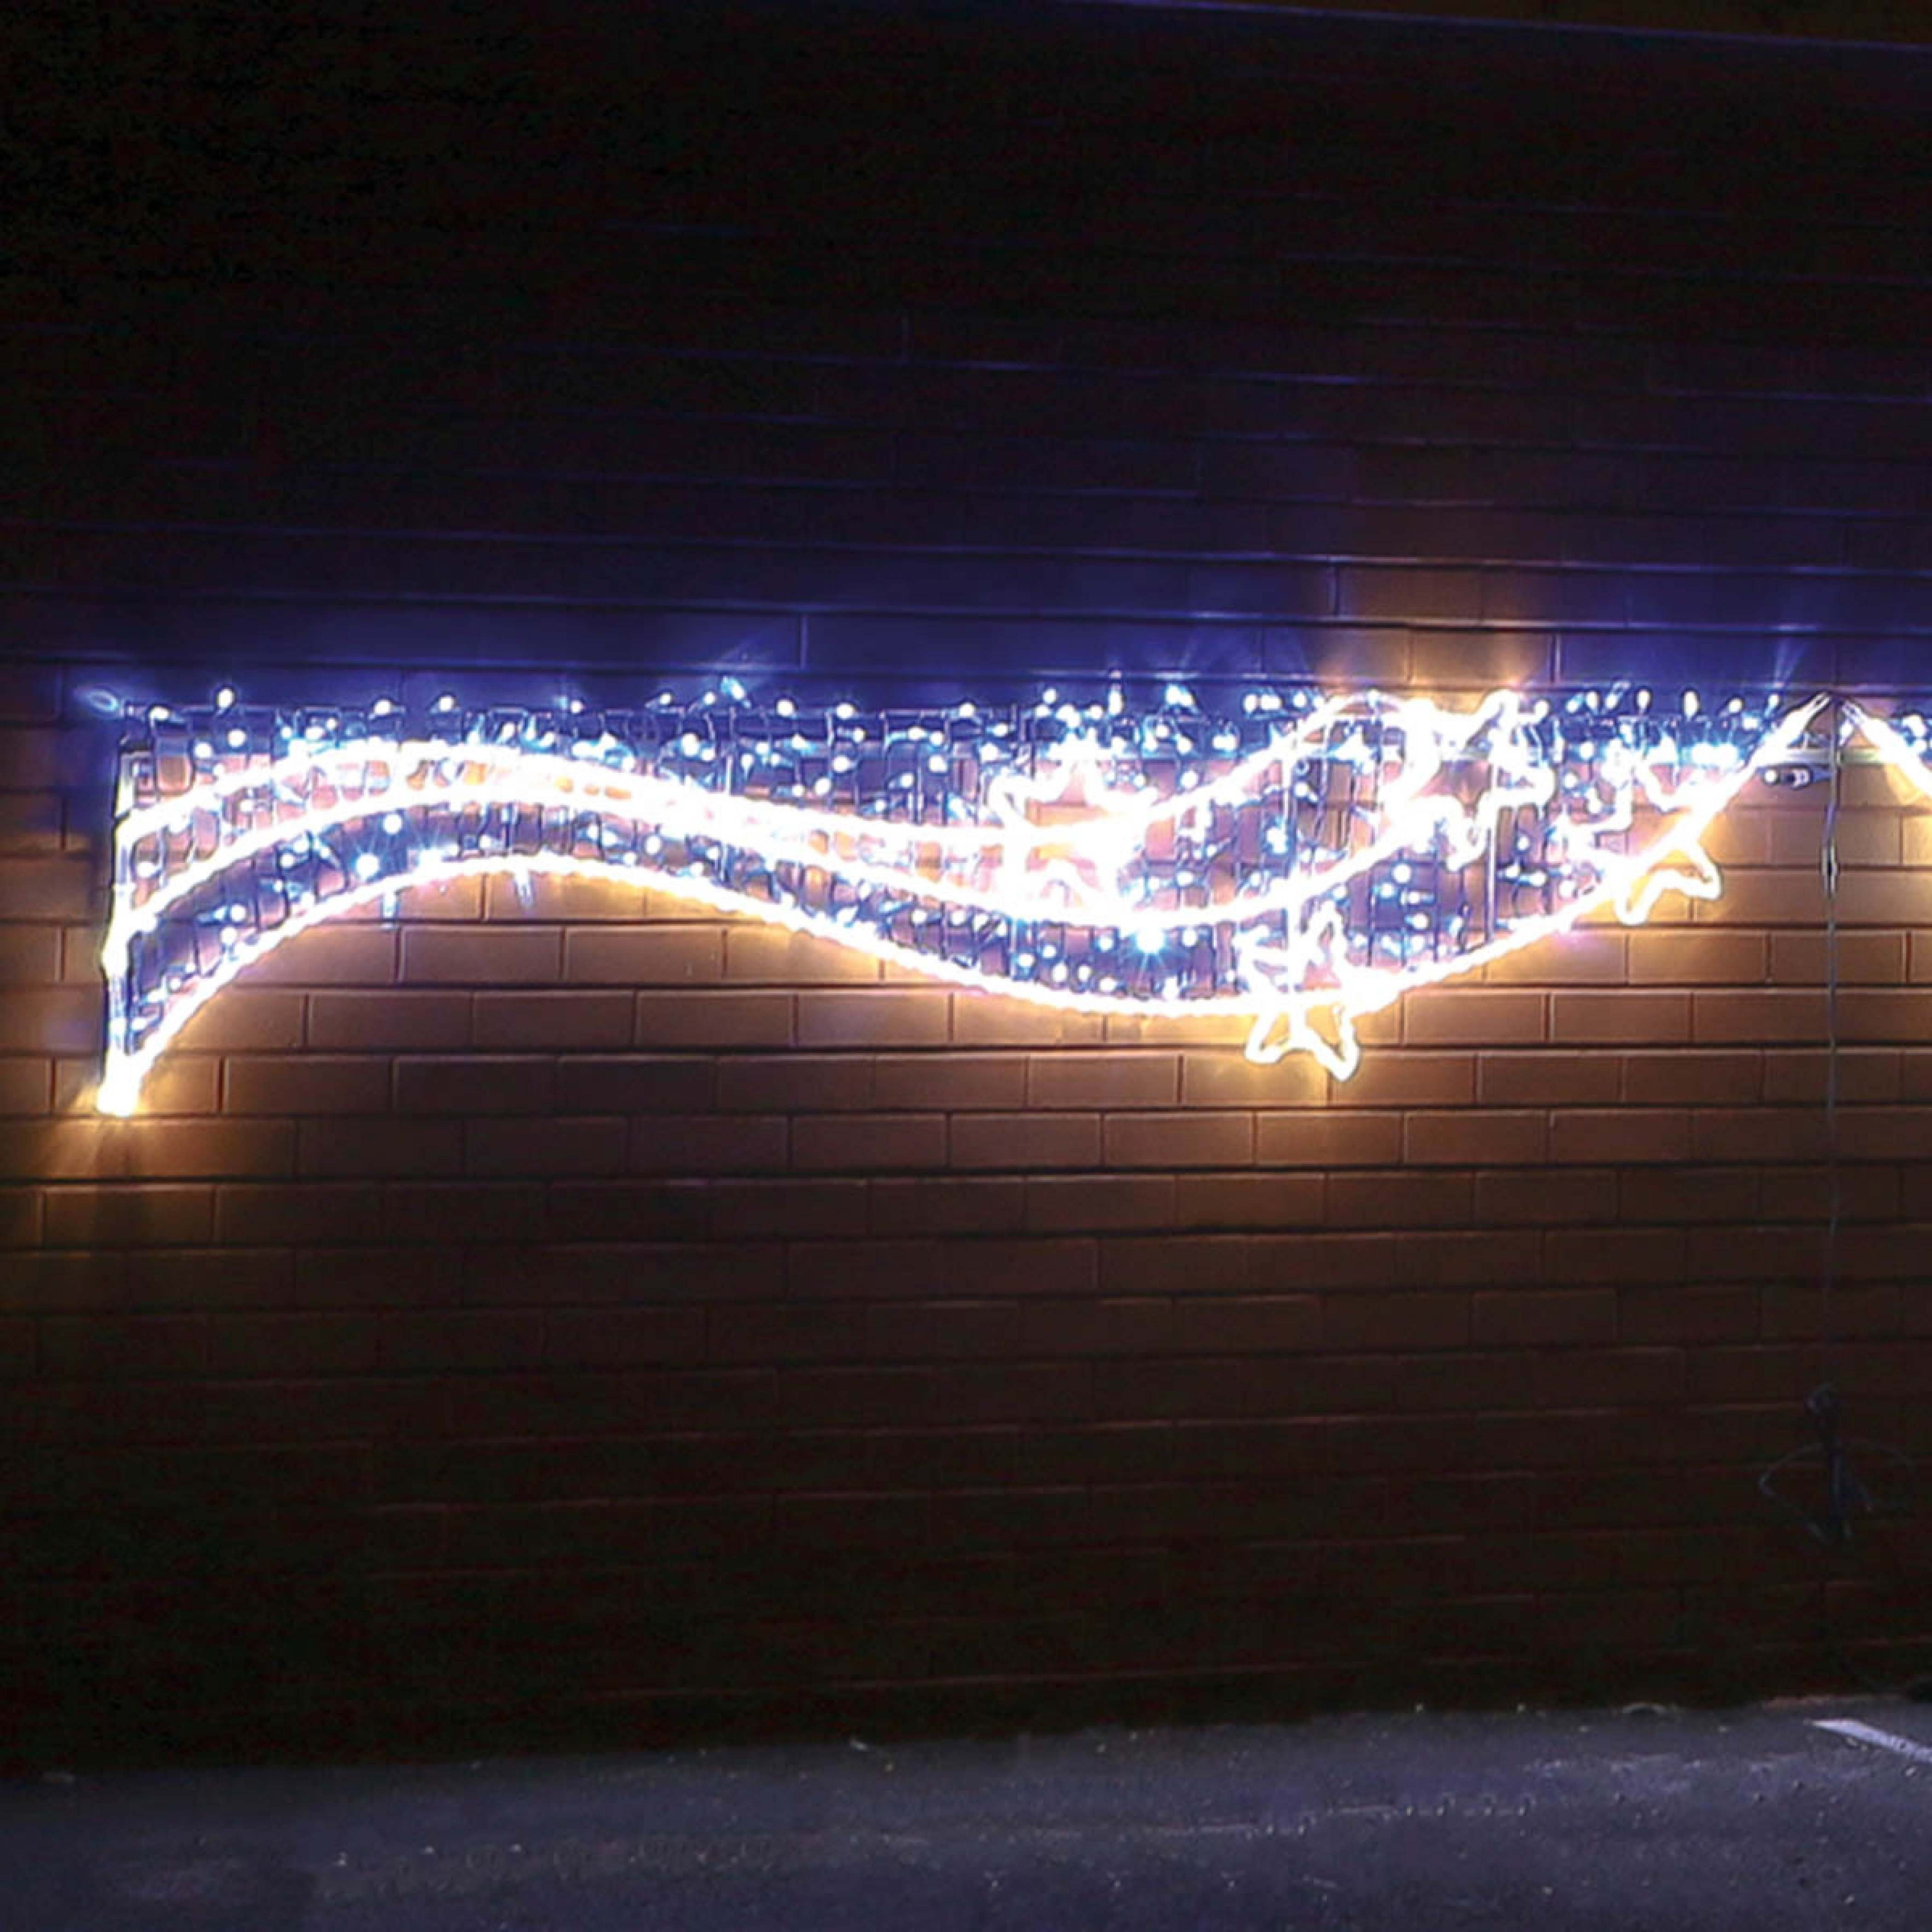 5M Aluminium Outdoor Rope Light Christmas Snowflakes Motif, Twinkle Leds with regard to Outdoor Christmas Rope Lanterns (Image 8 of 20)